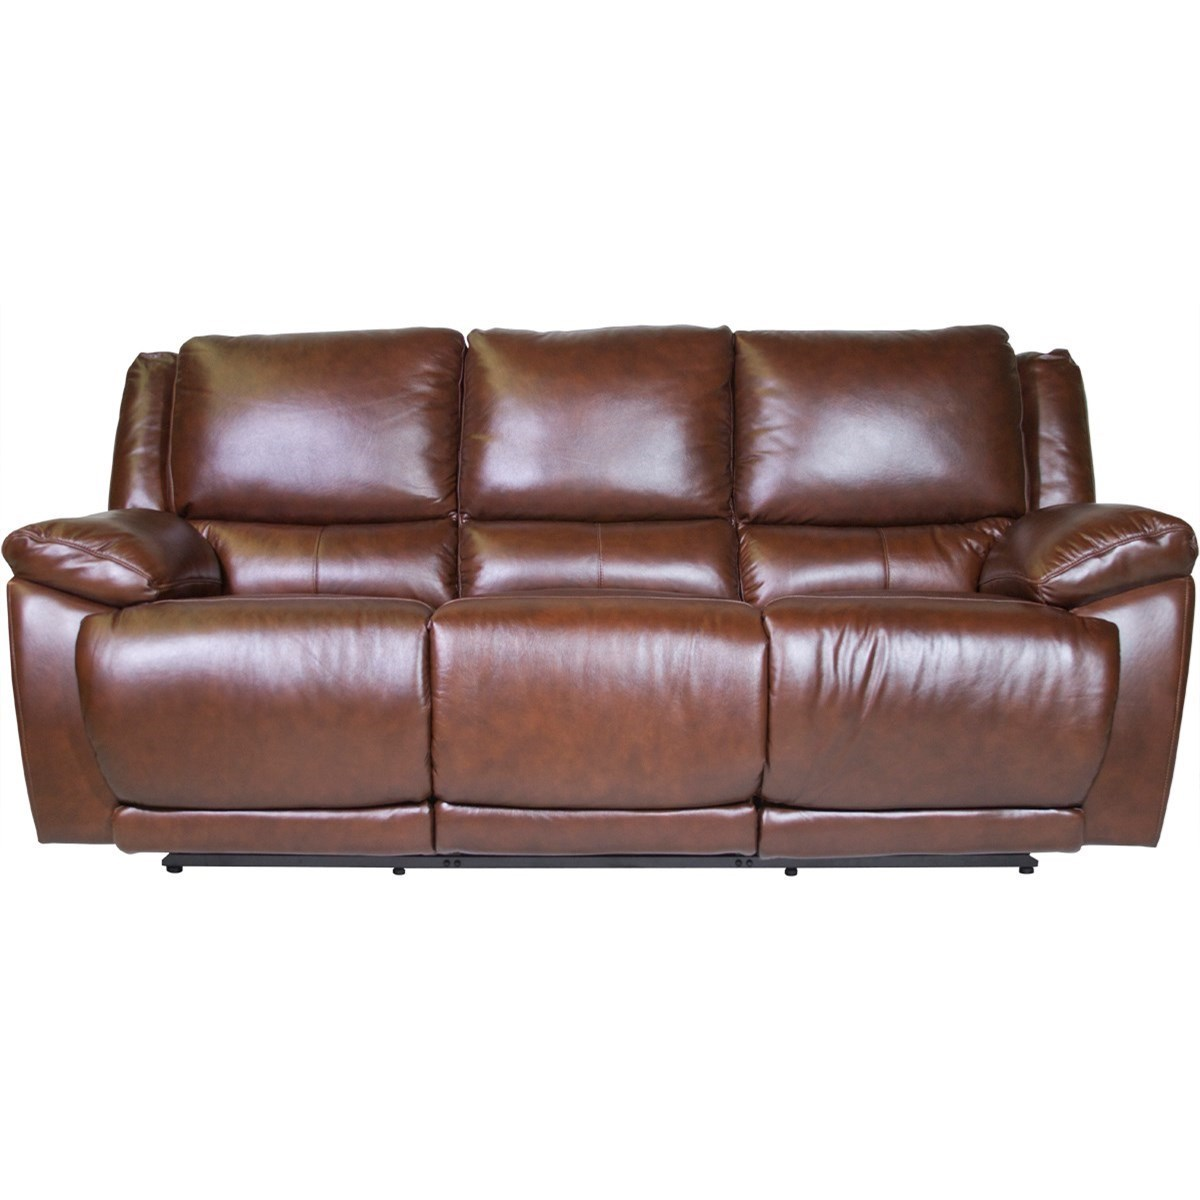 Superior Futura Leather Curtis Power Reclining Sofa   HomeWorld Furniture    Reclining Sofas